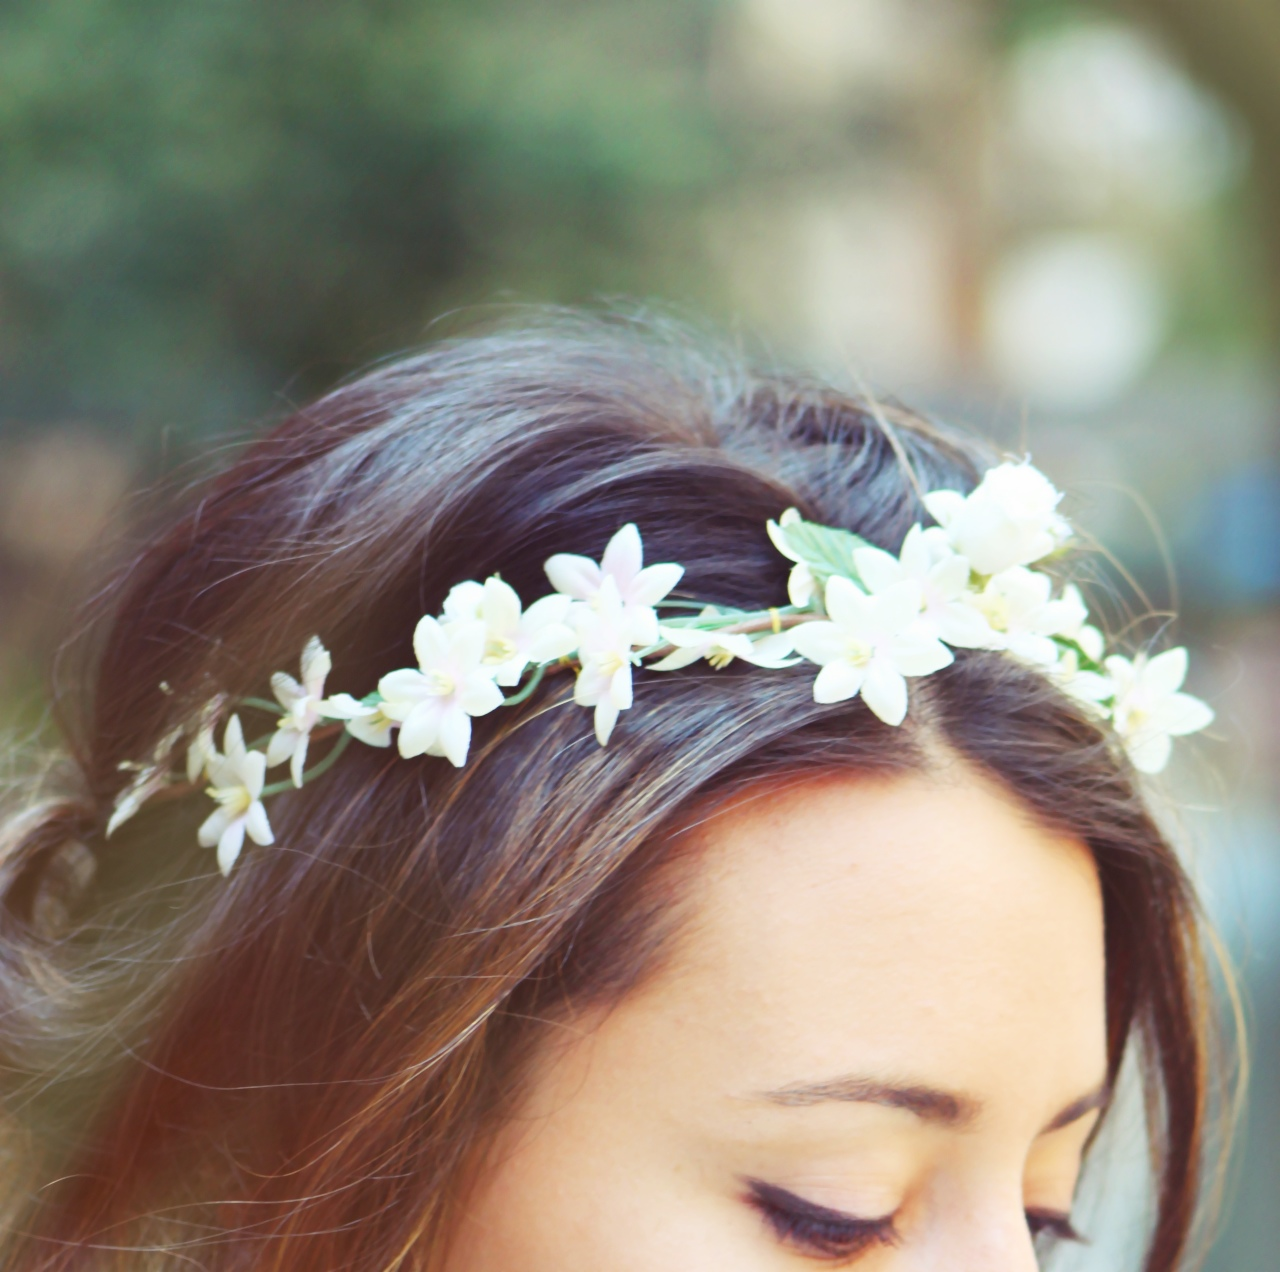 flower headband tumblr girl - photo #45